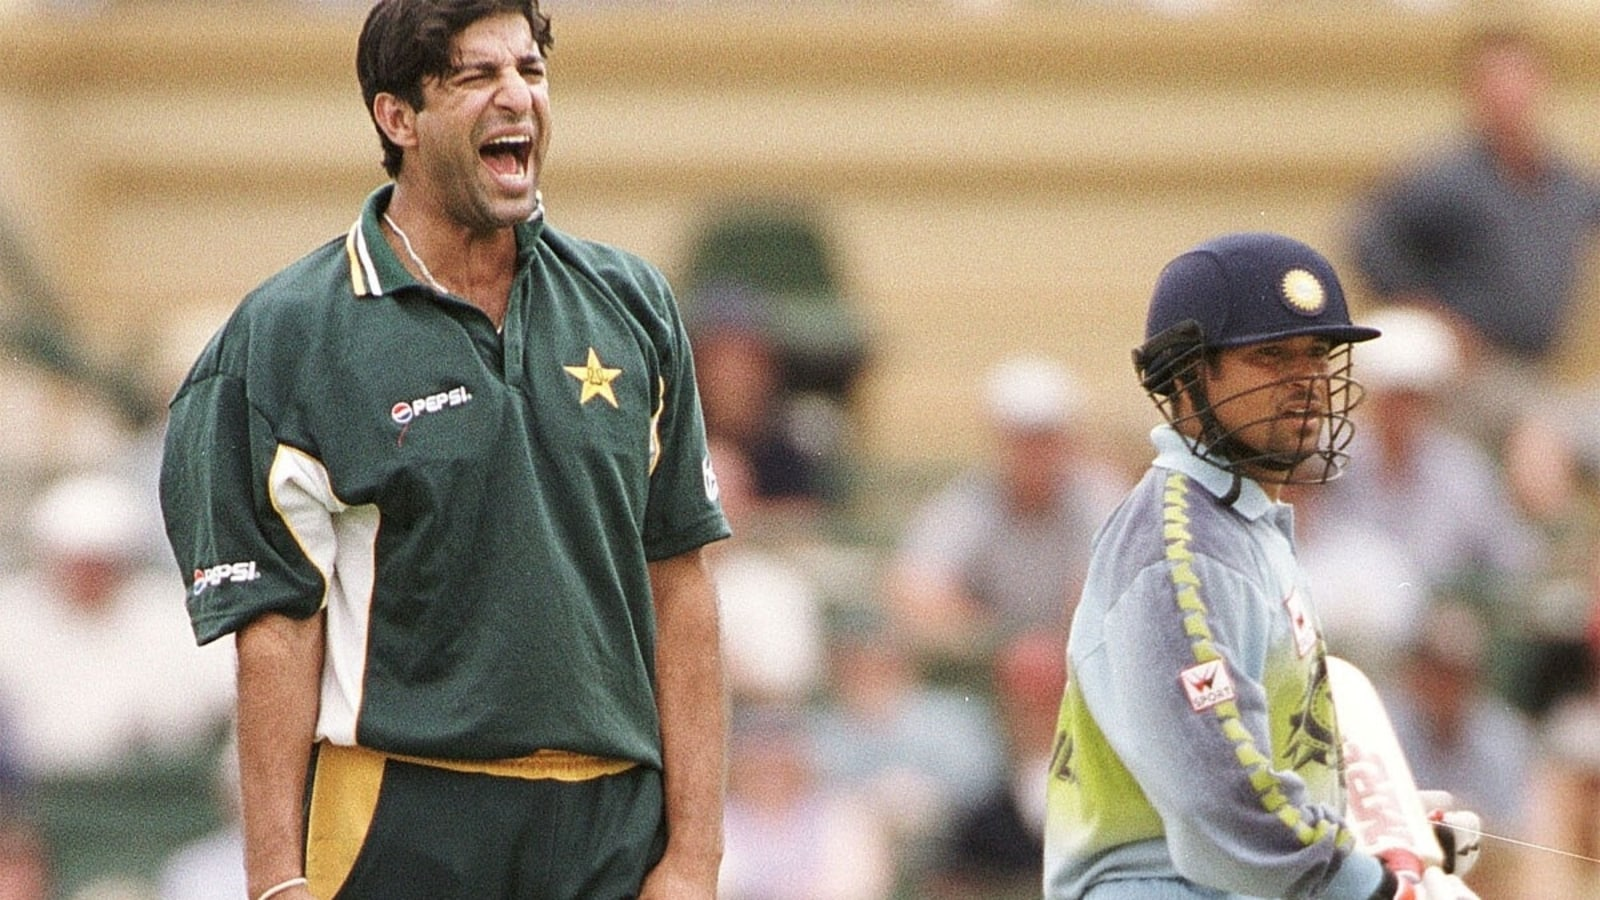 He got hit on the helmet and smashed the next ball for six: Prasad narrates battle between Tendulkar and Akram